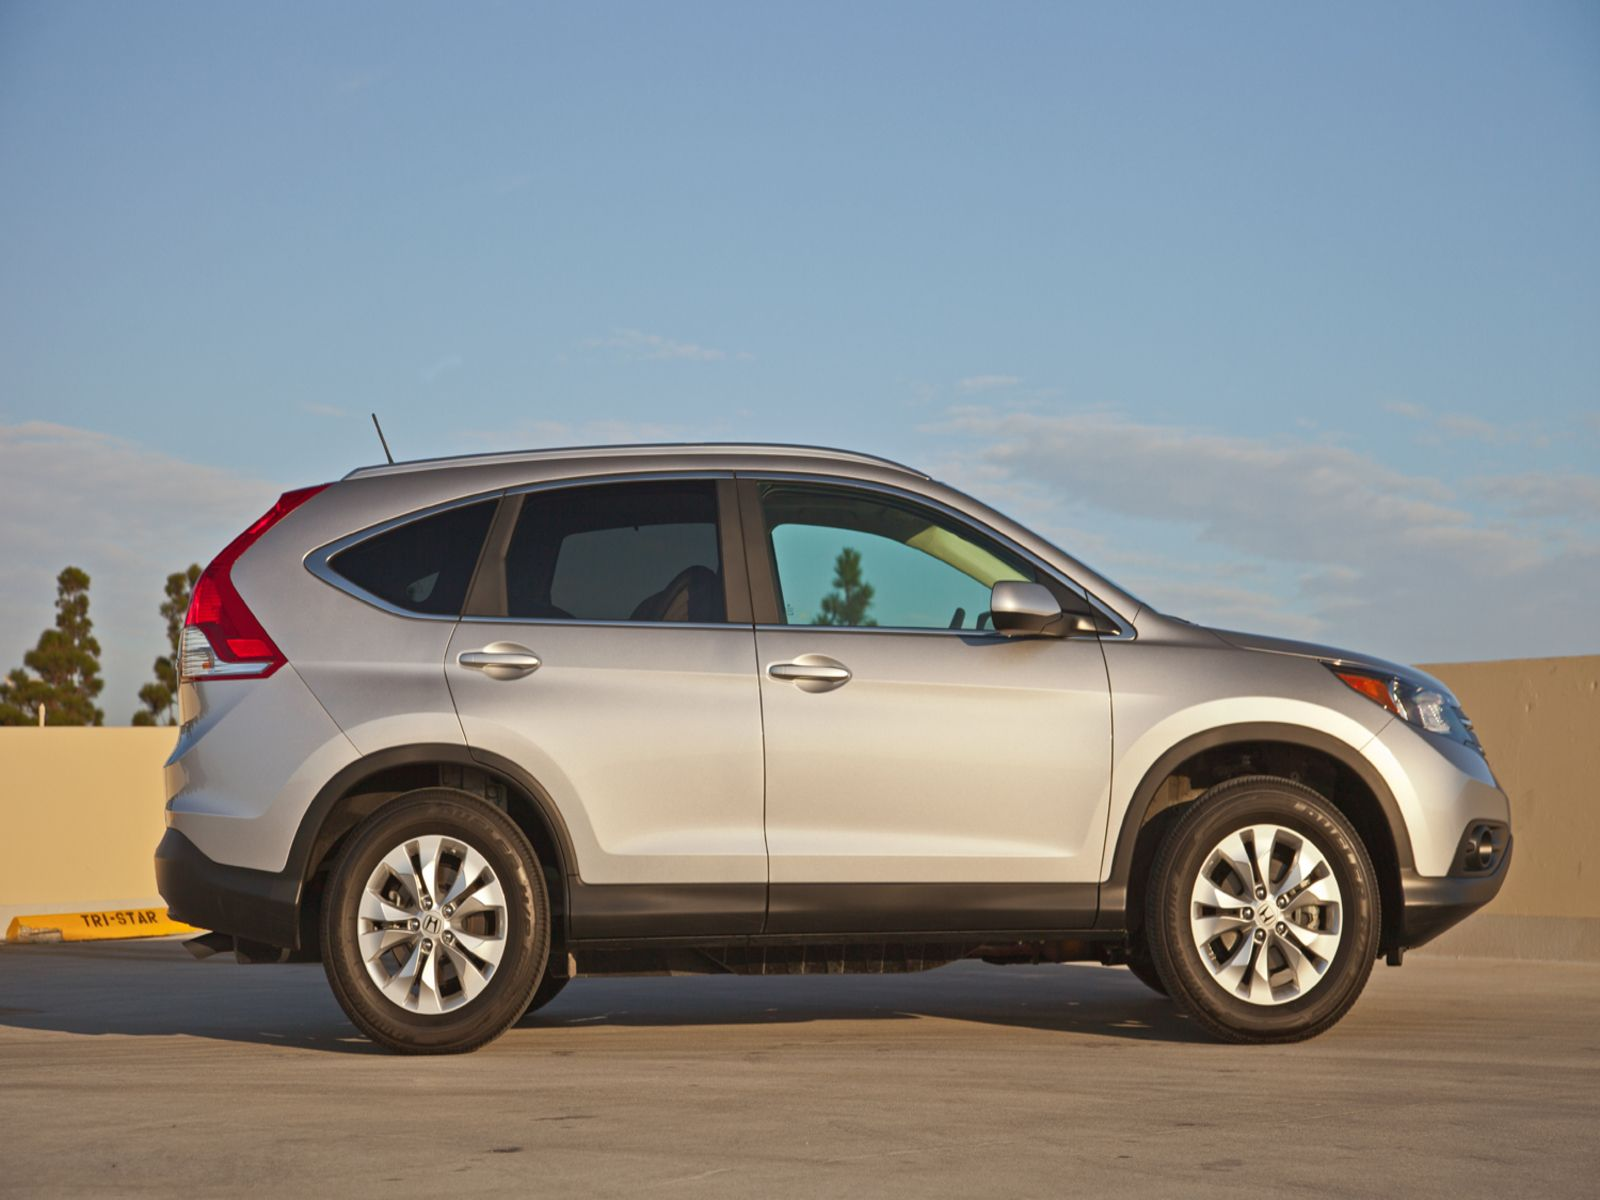 Honda CRV 2013 Price in Pakistan Check more at https